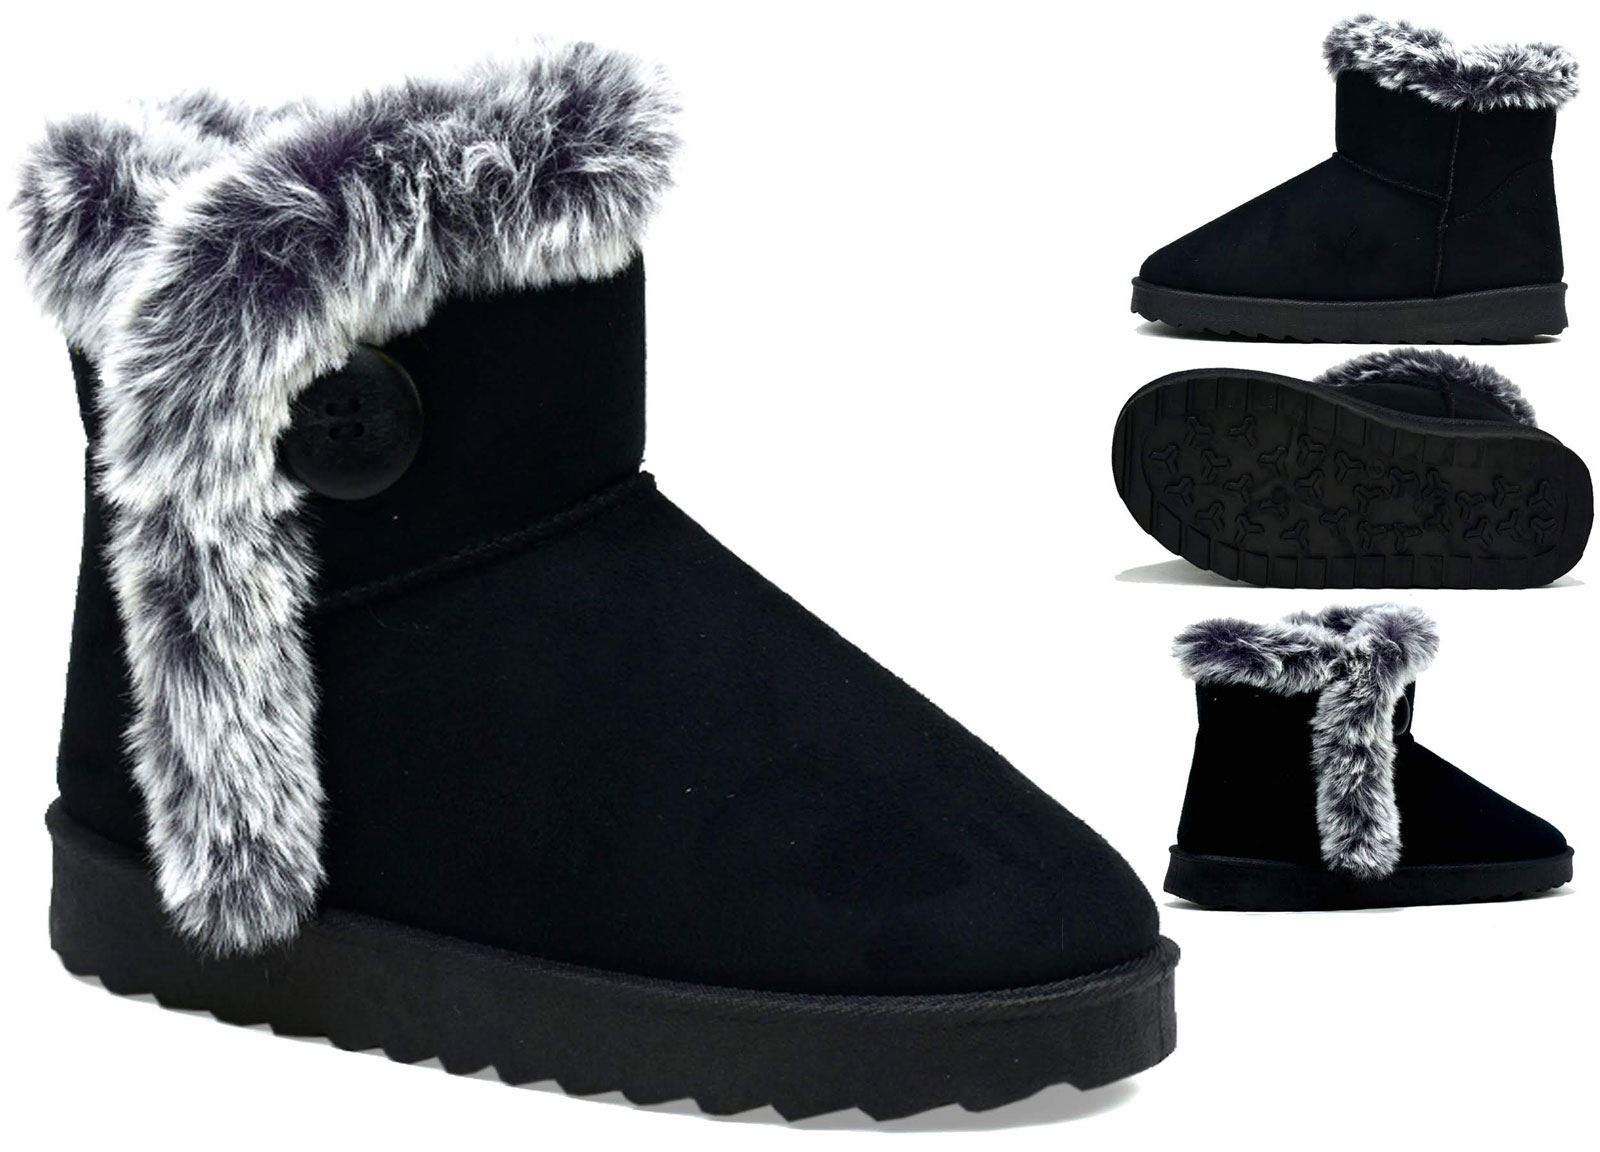 Ladies Womens Winter Fur Snow Flat Comfy Boots Casual Designer Shoes Size 3-8